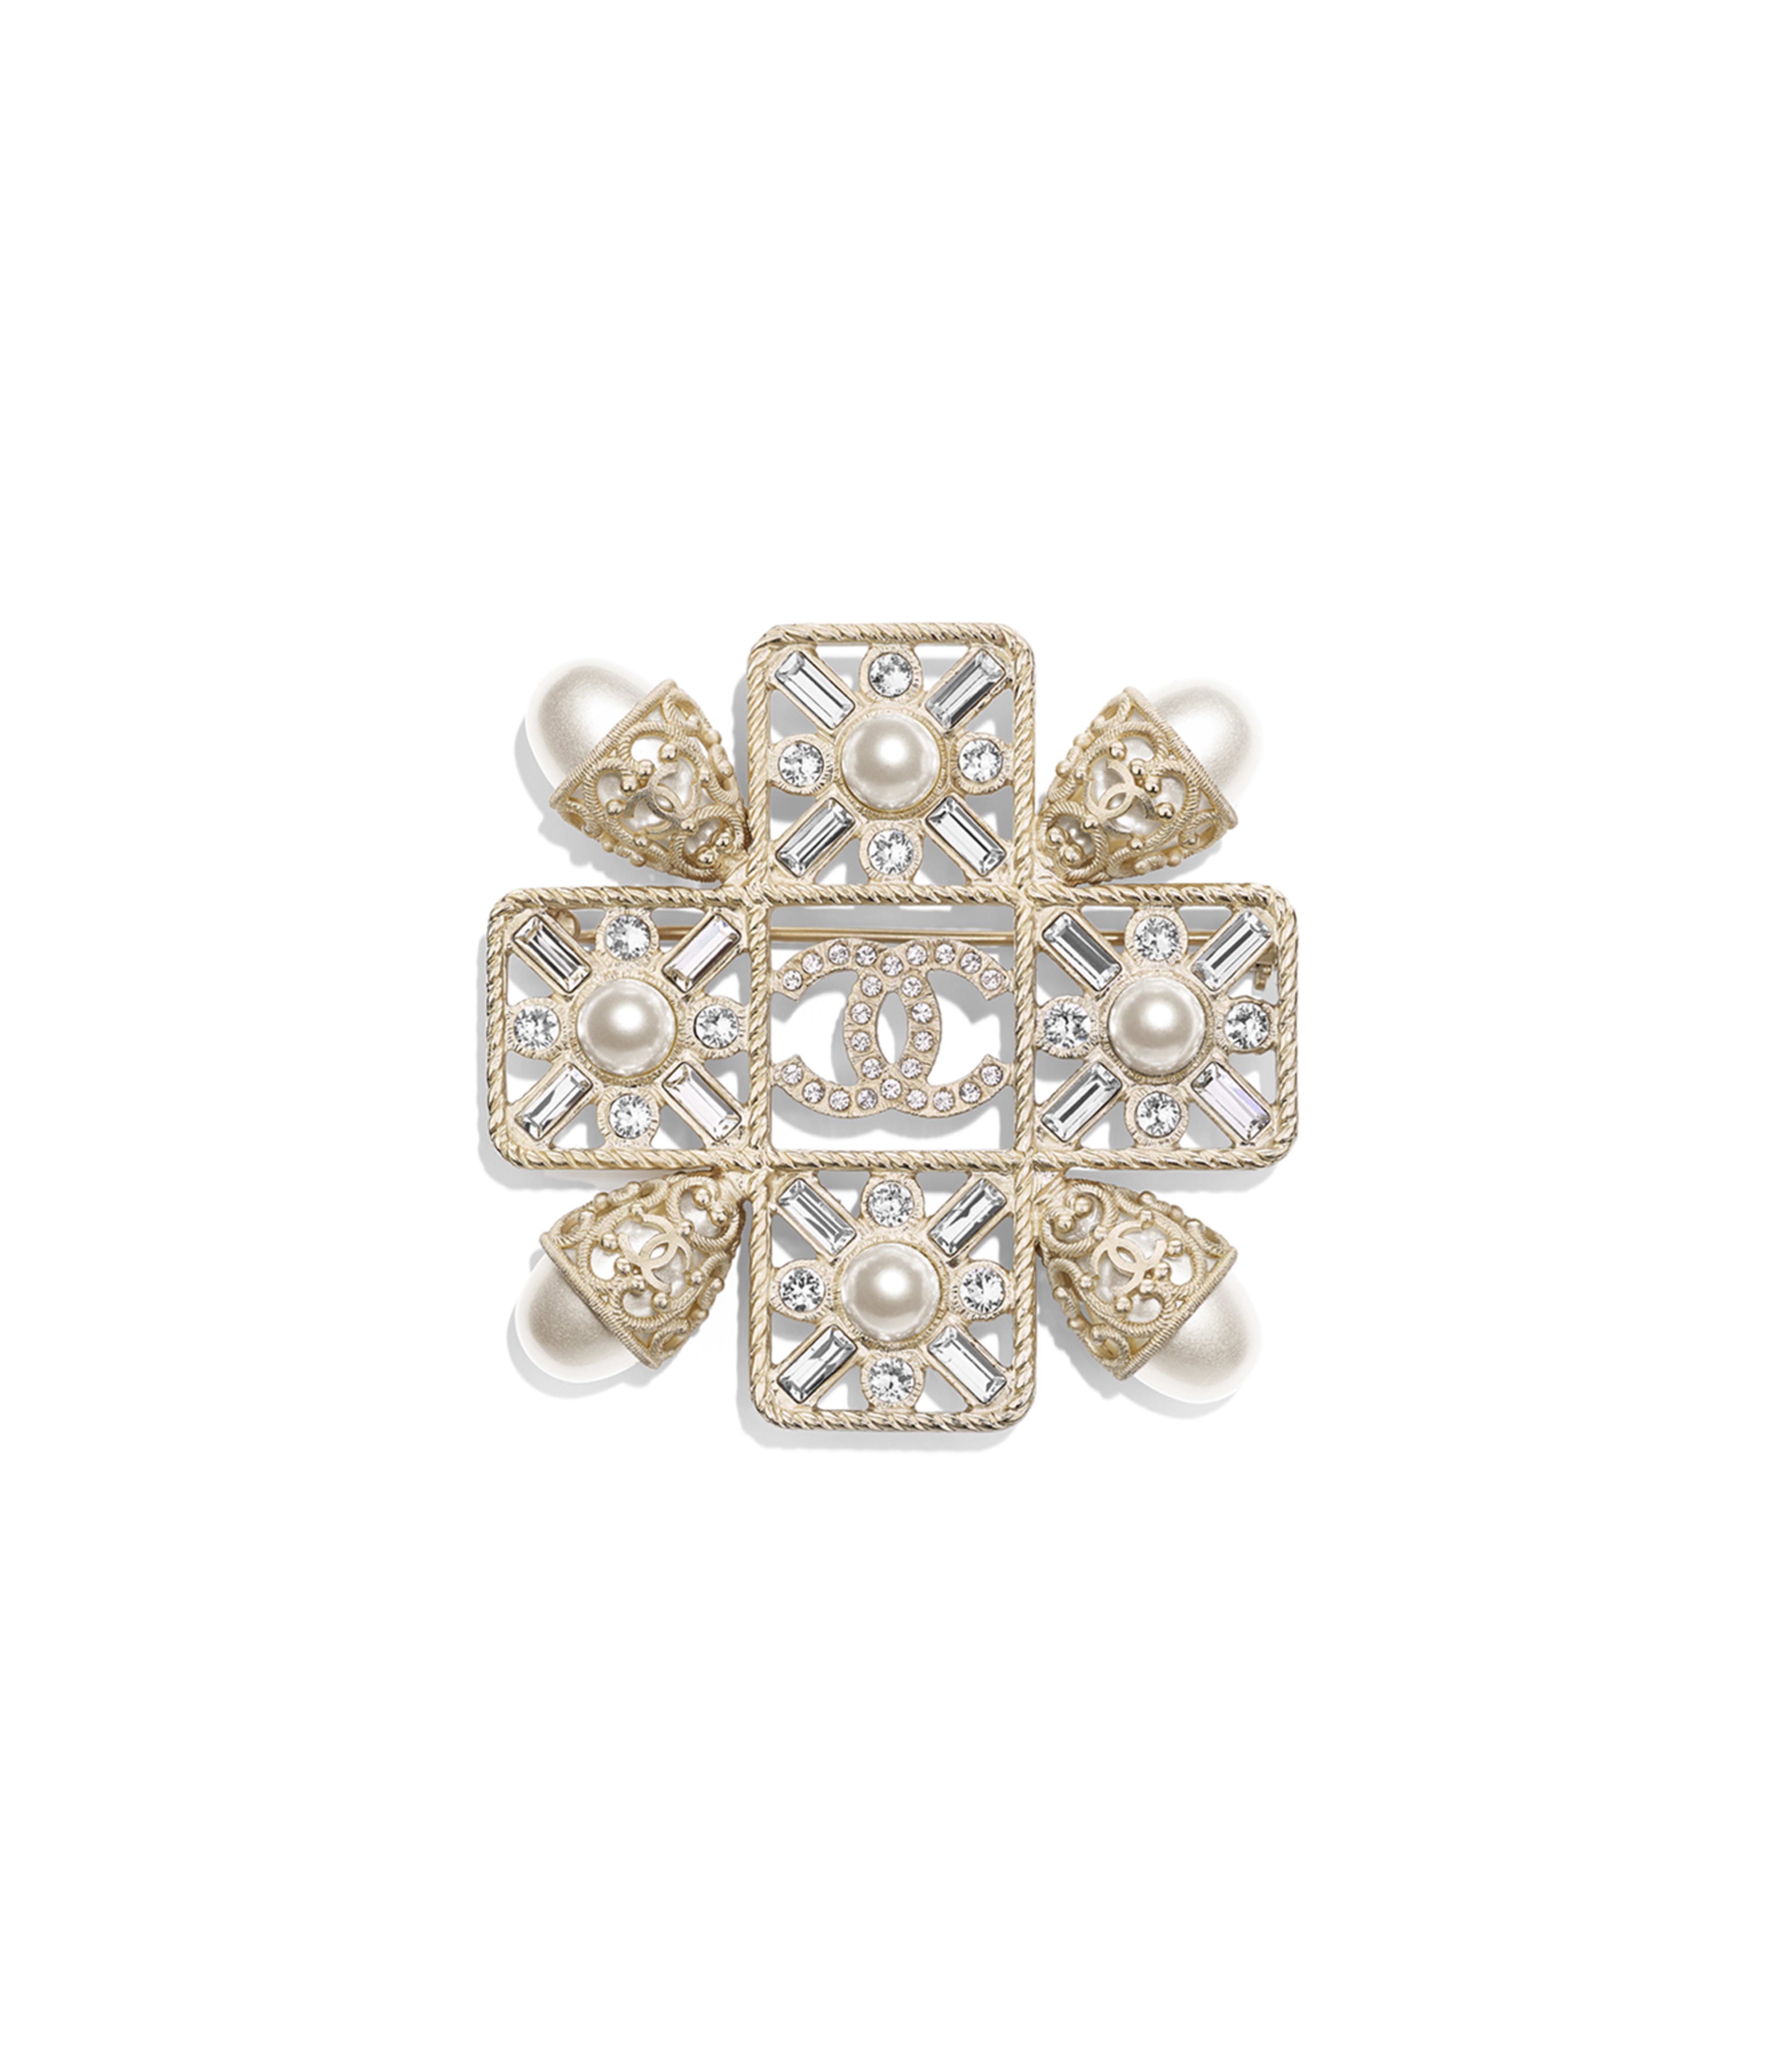 14315c19e Brooch Metal, Glass Pearls, Imitation Pearls & Strass, Gold, Pearly White &  Crystal Ref. AB0646Y47601Z8905